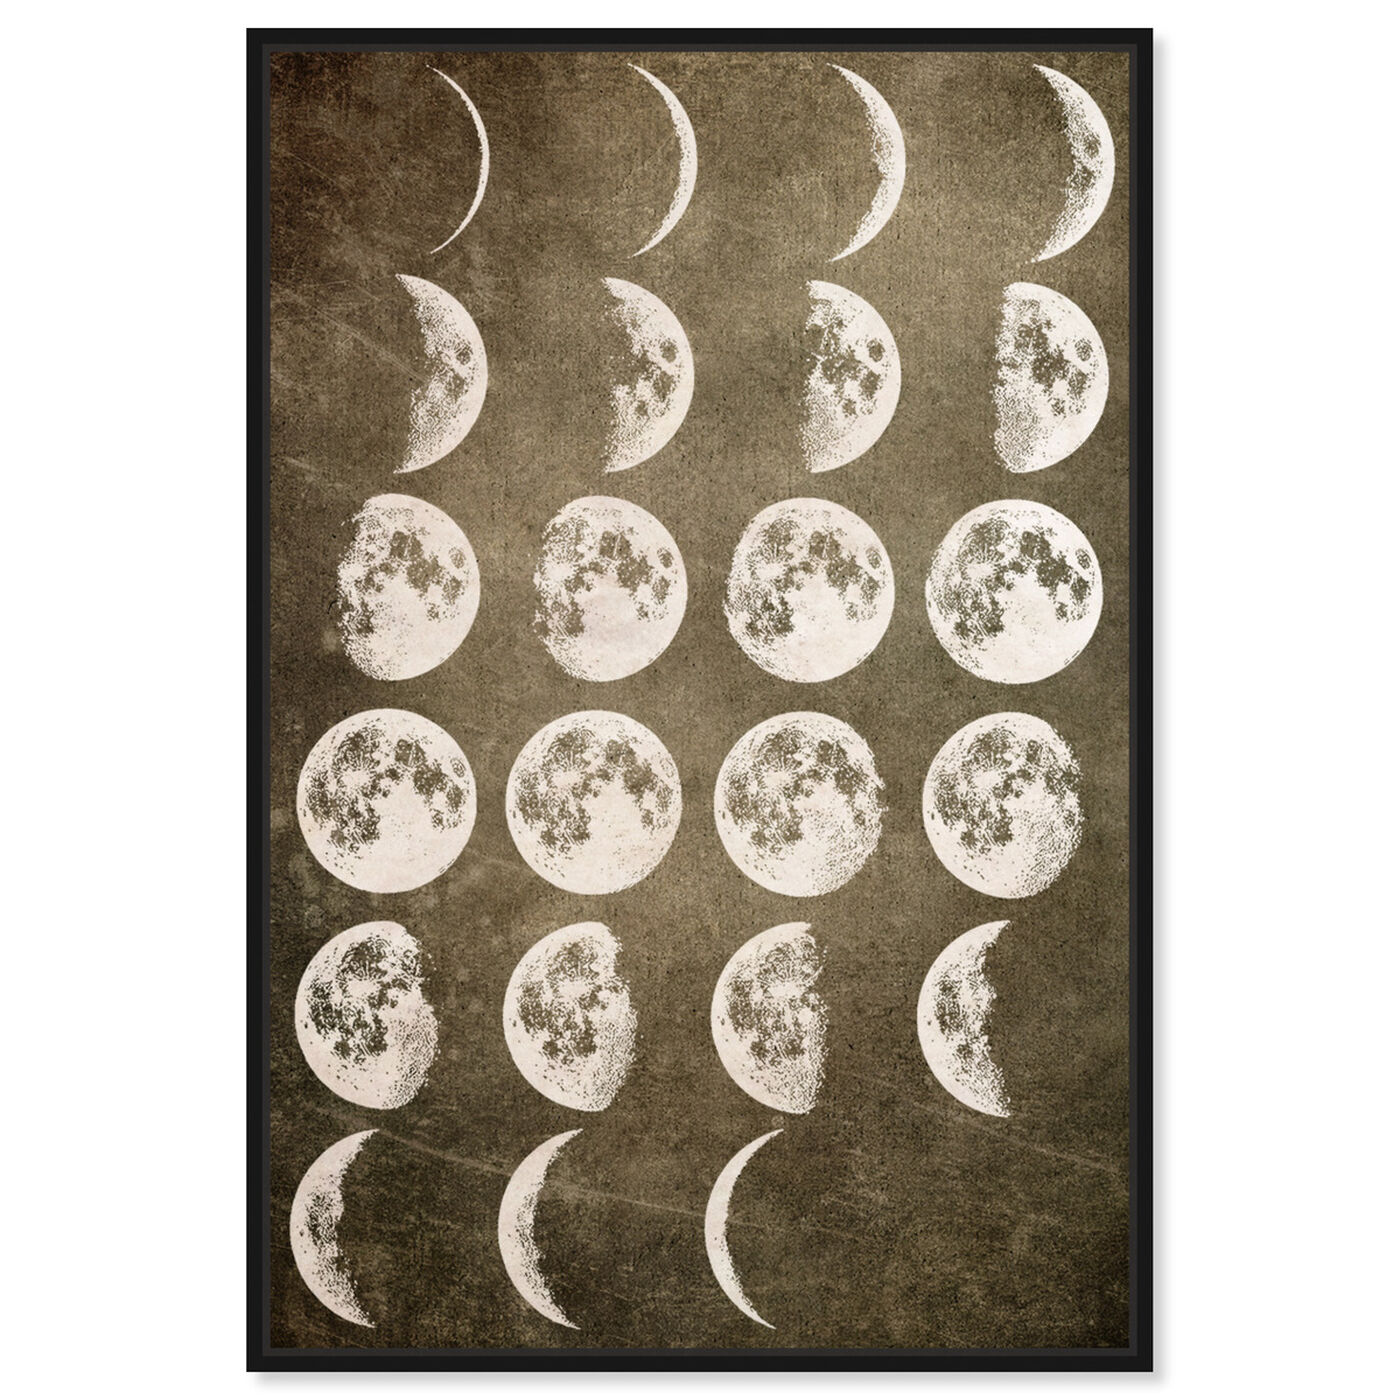 Front view of Lunar Phases featuring astronomy and space and moons phases art.